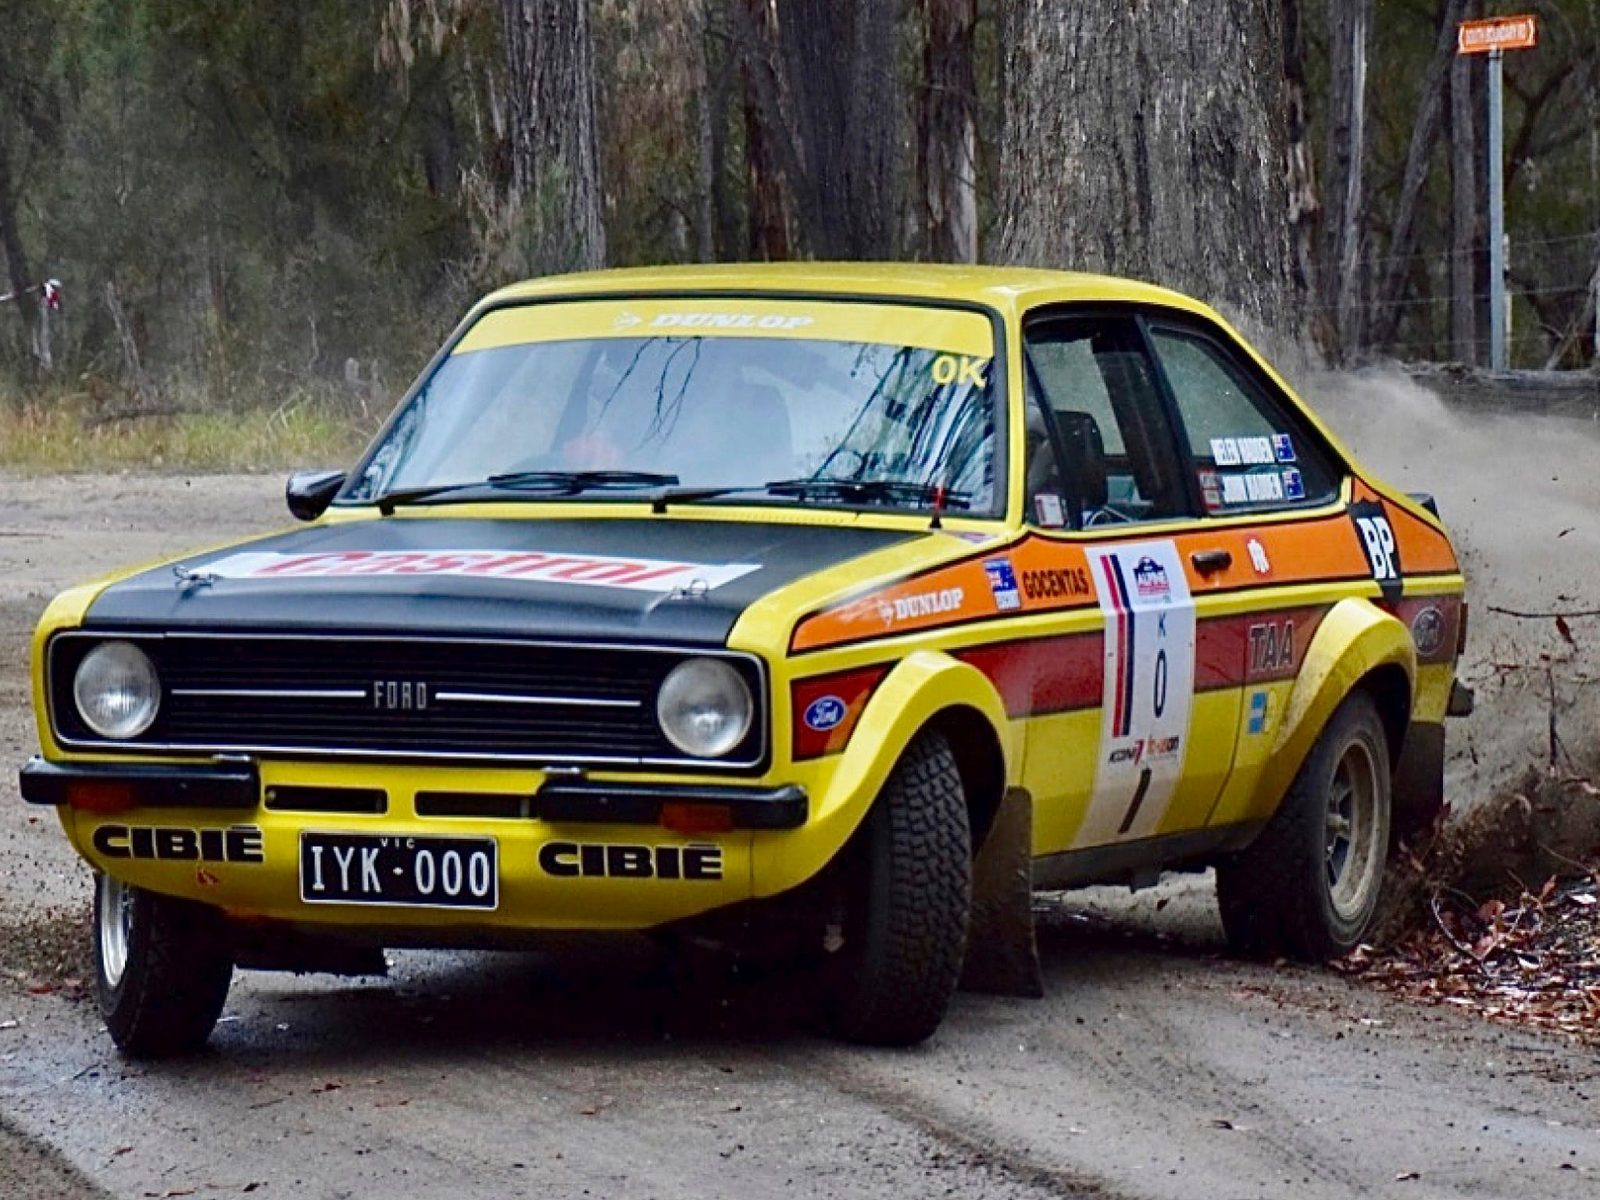 A yellow Ford Escort rally car driving through a forest at high speed